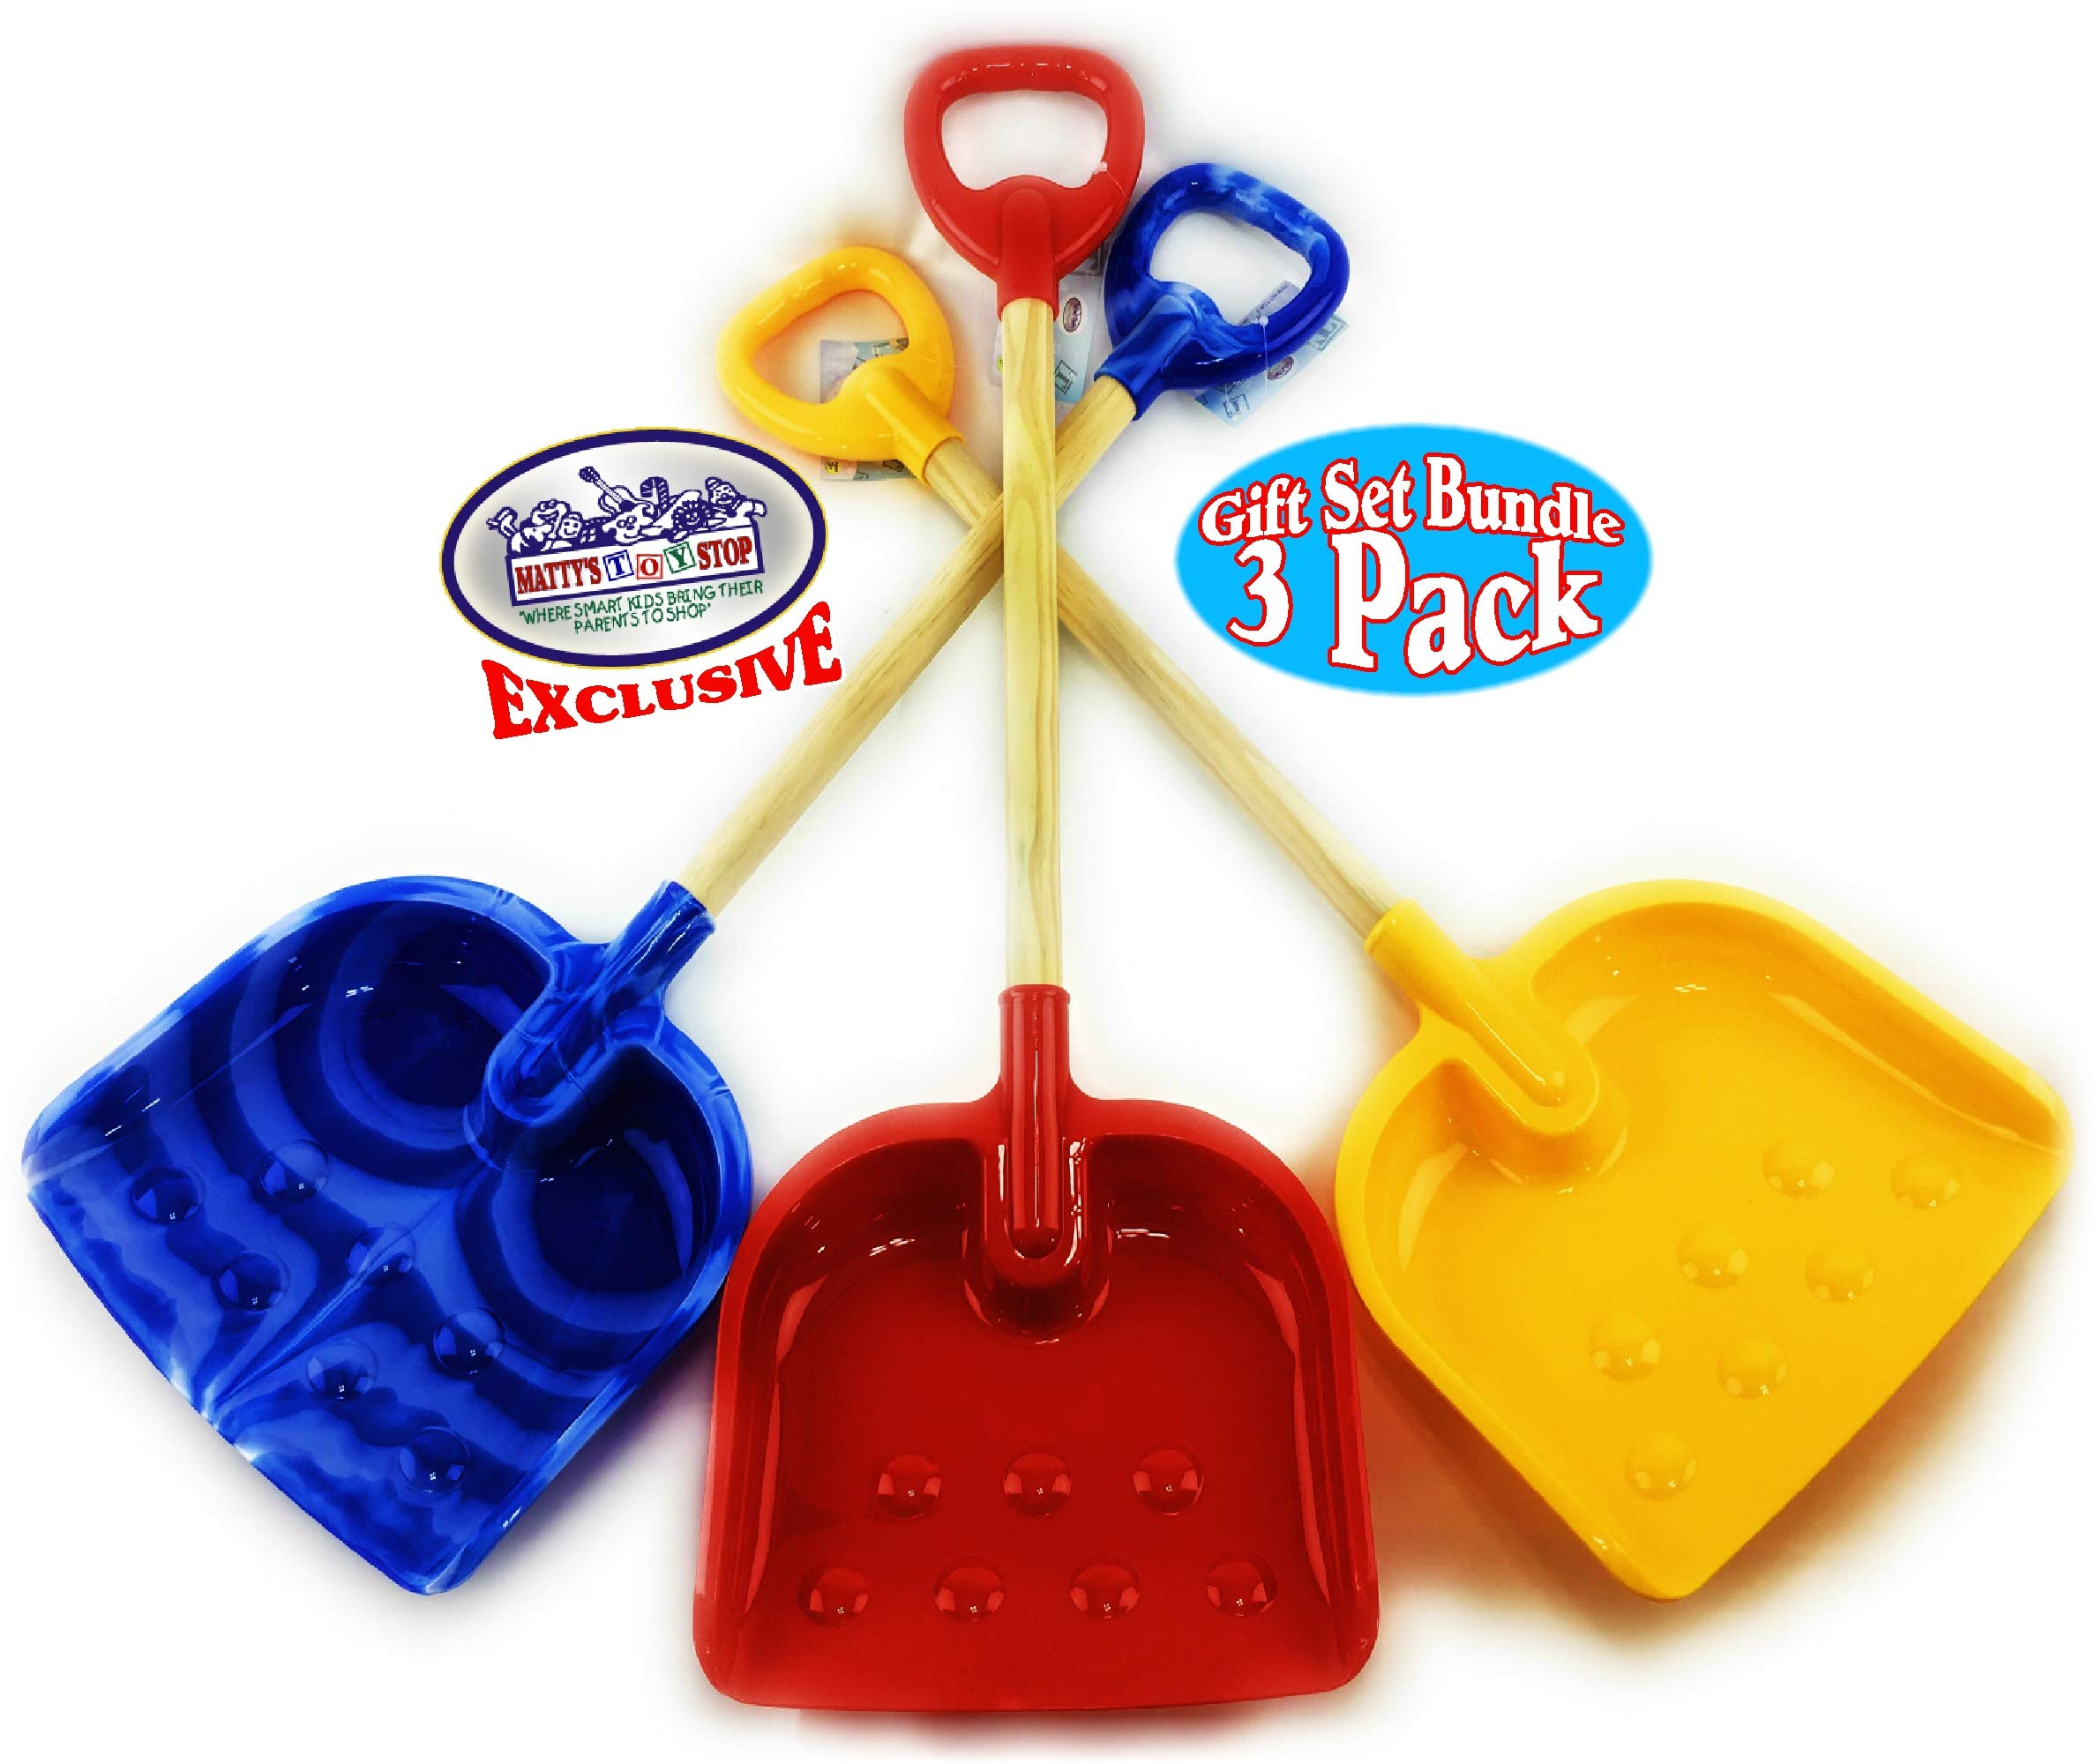 Matty's Toy Stop 28'' Heavy Duty Wooden Snow Shovels with Plastic Scoop & Handle for Kids Red, Yellow & Blue Swirl Gift Set Bundle - 3 Pack by Matty's Toy Stop (Image #1)